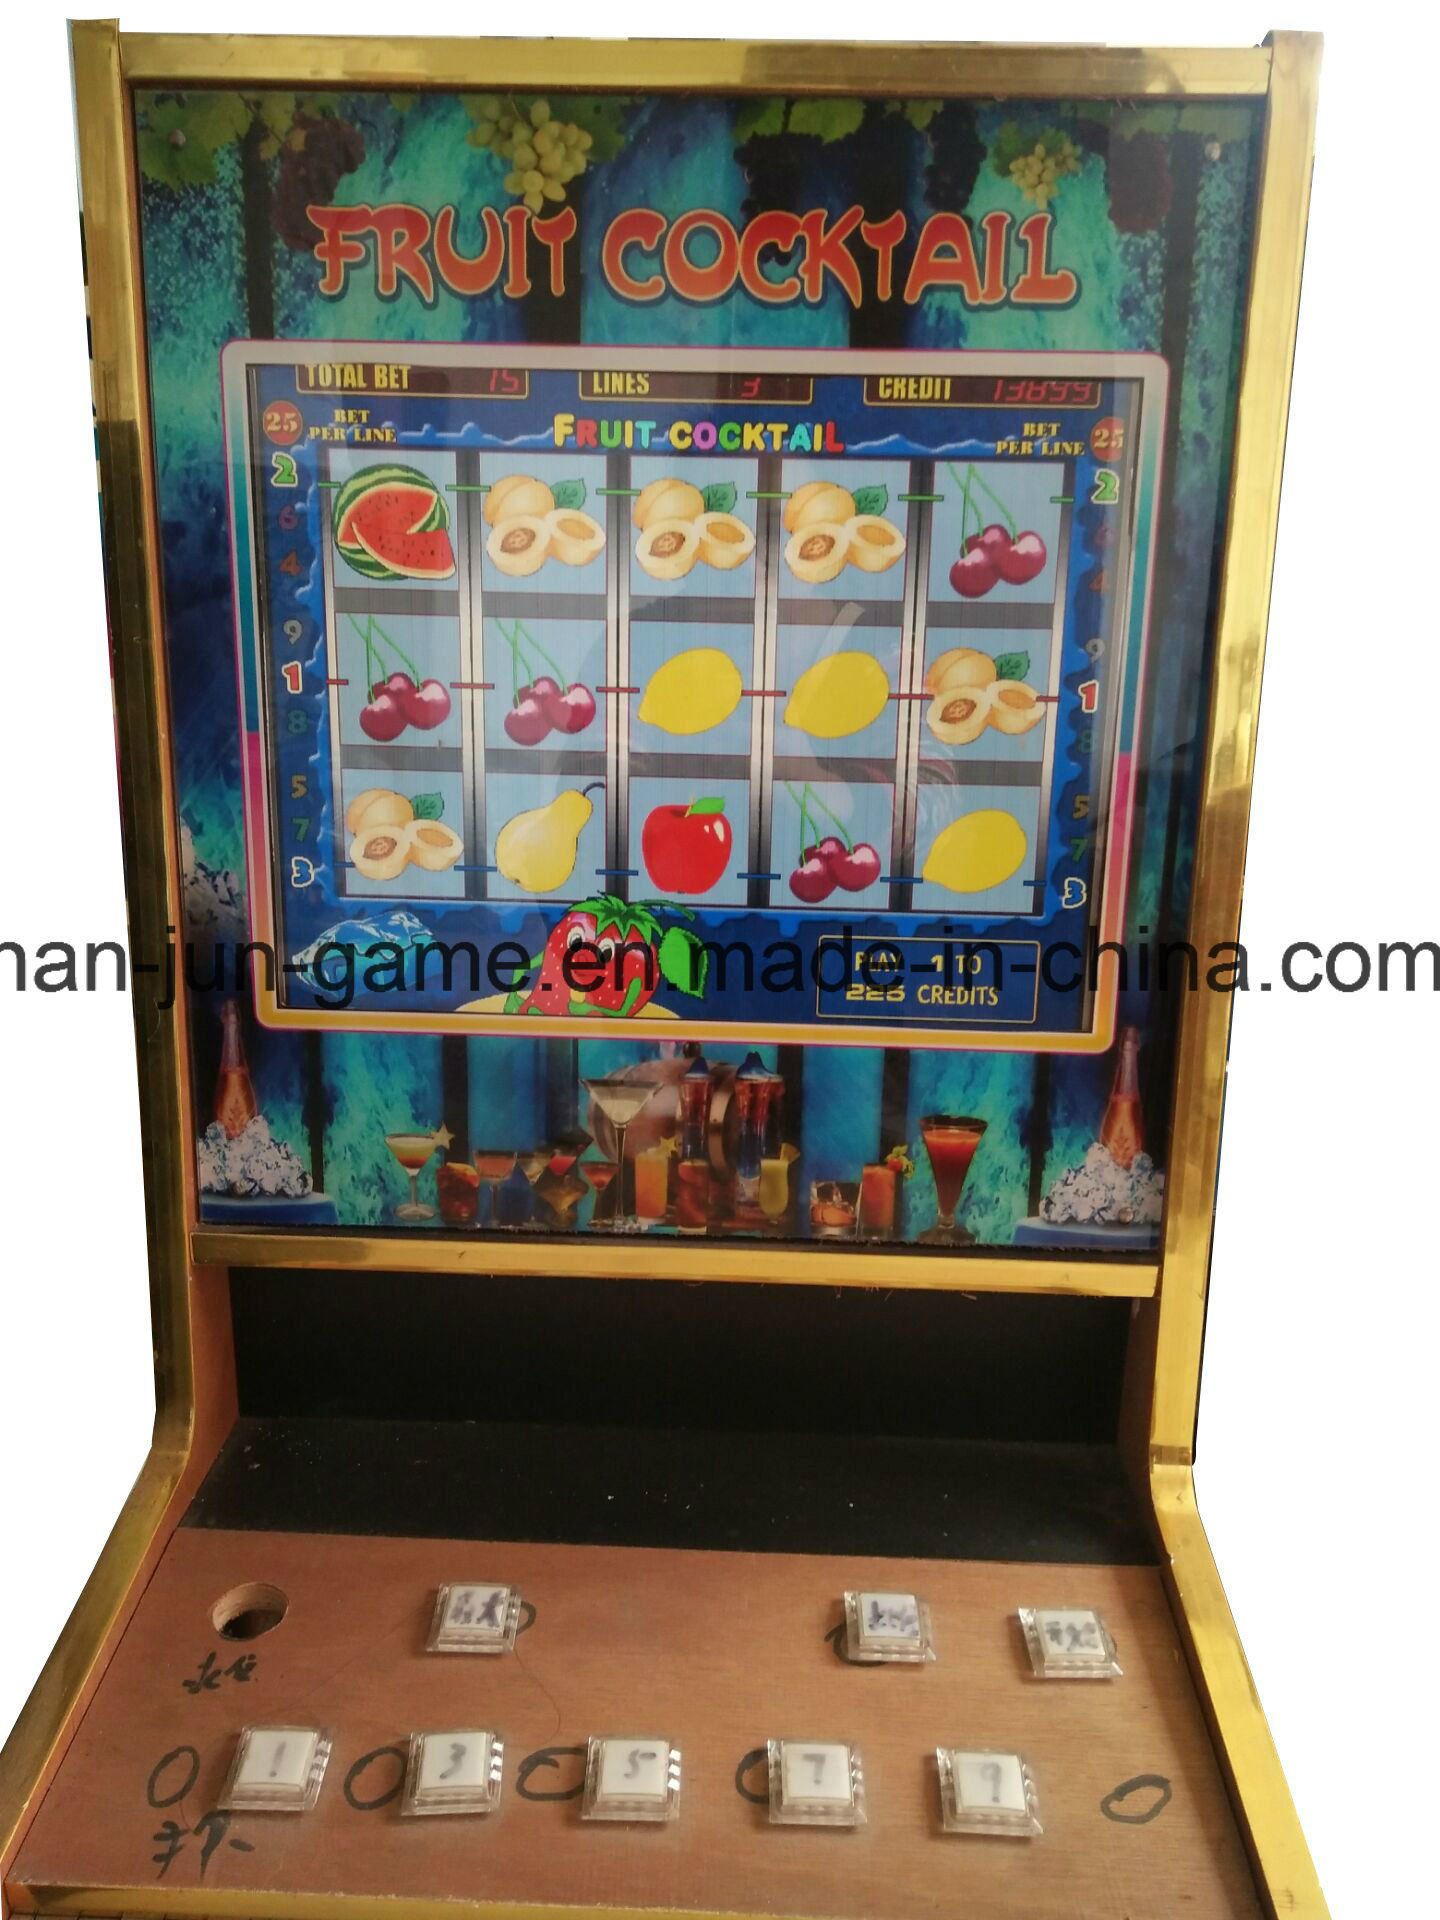 Arcade Coin Slot Free Cred